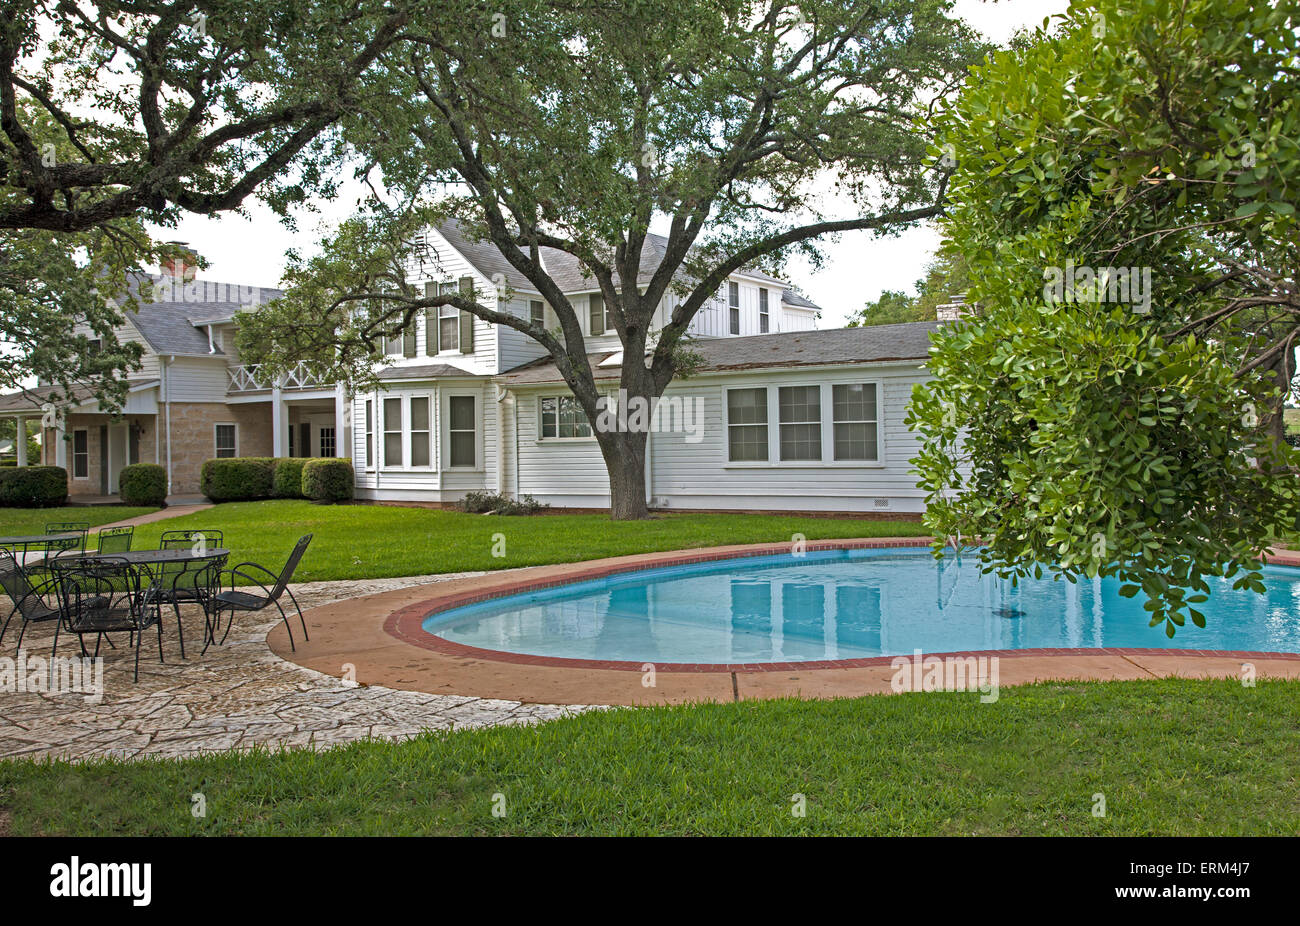 The swimming pool at the texas white house ranch home of lyndon b the swimming pool at the texas white house ranch home of lyndon b johnson and lady bird johnson publicscrutiny Image collections